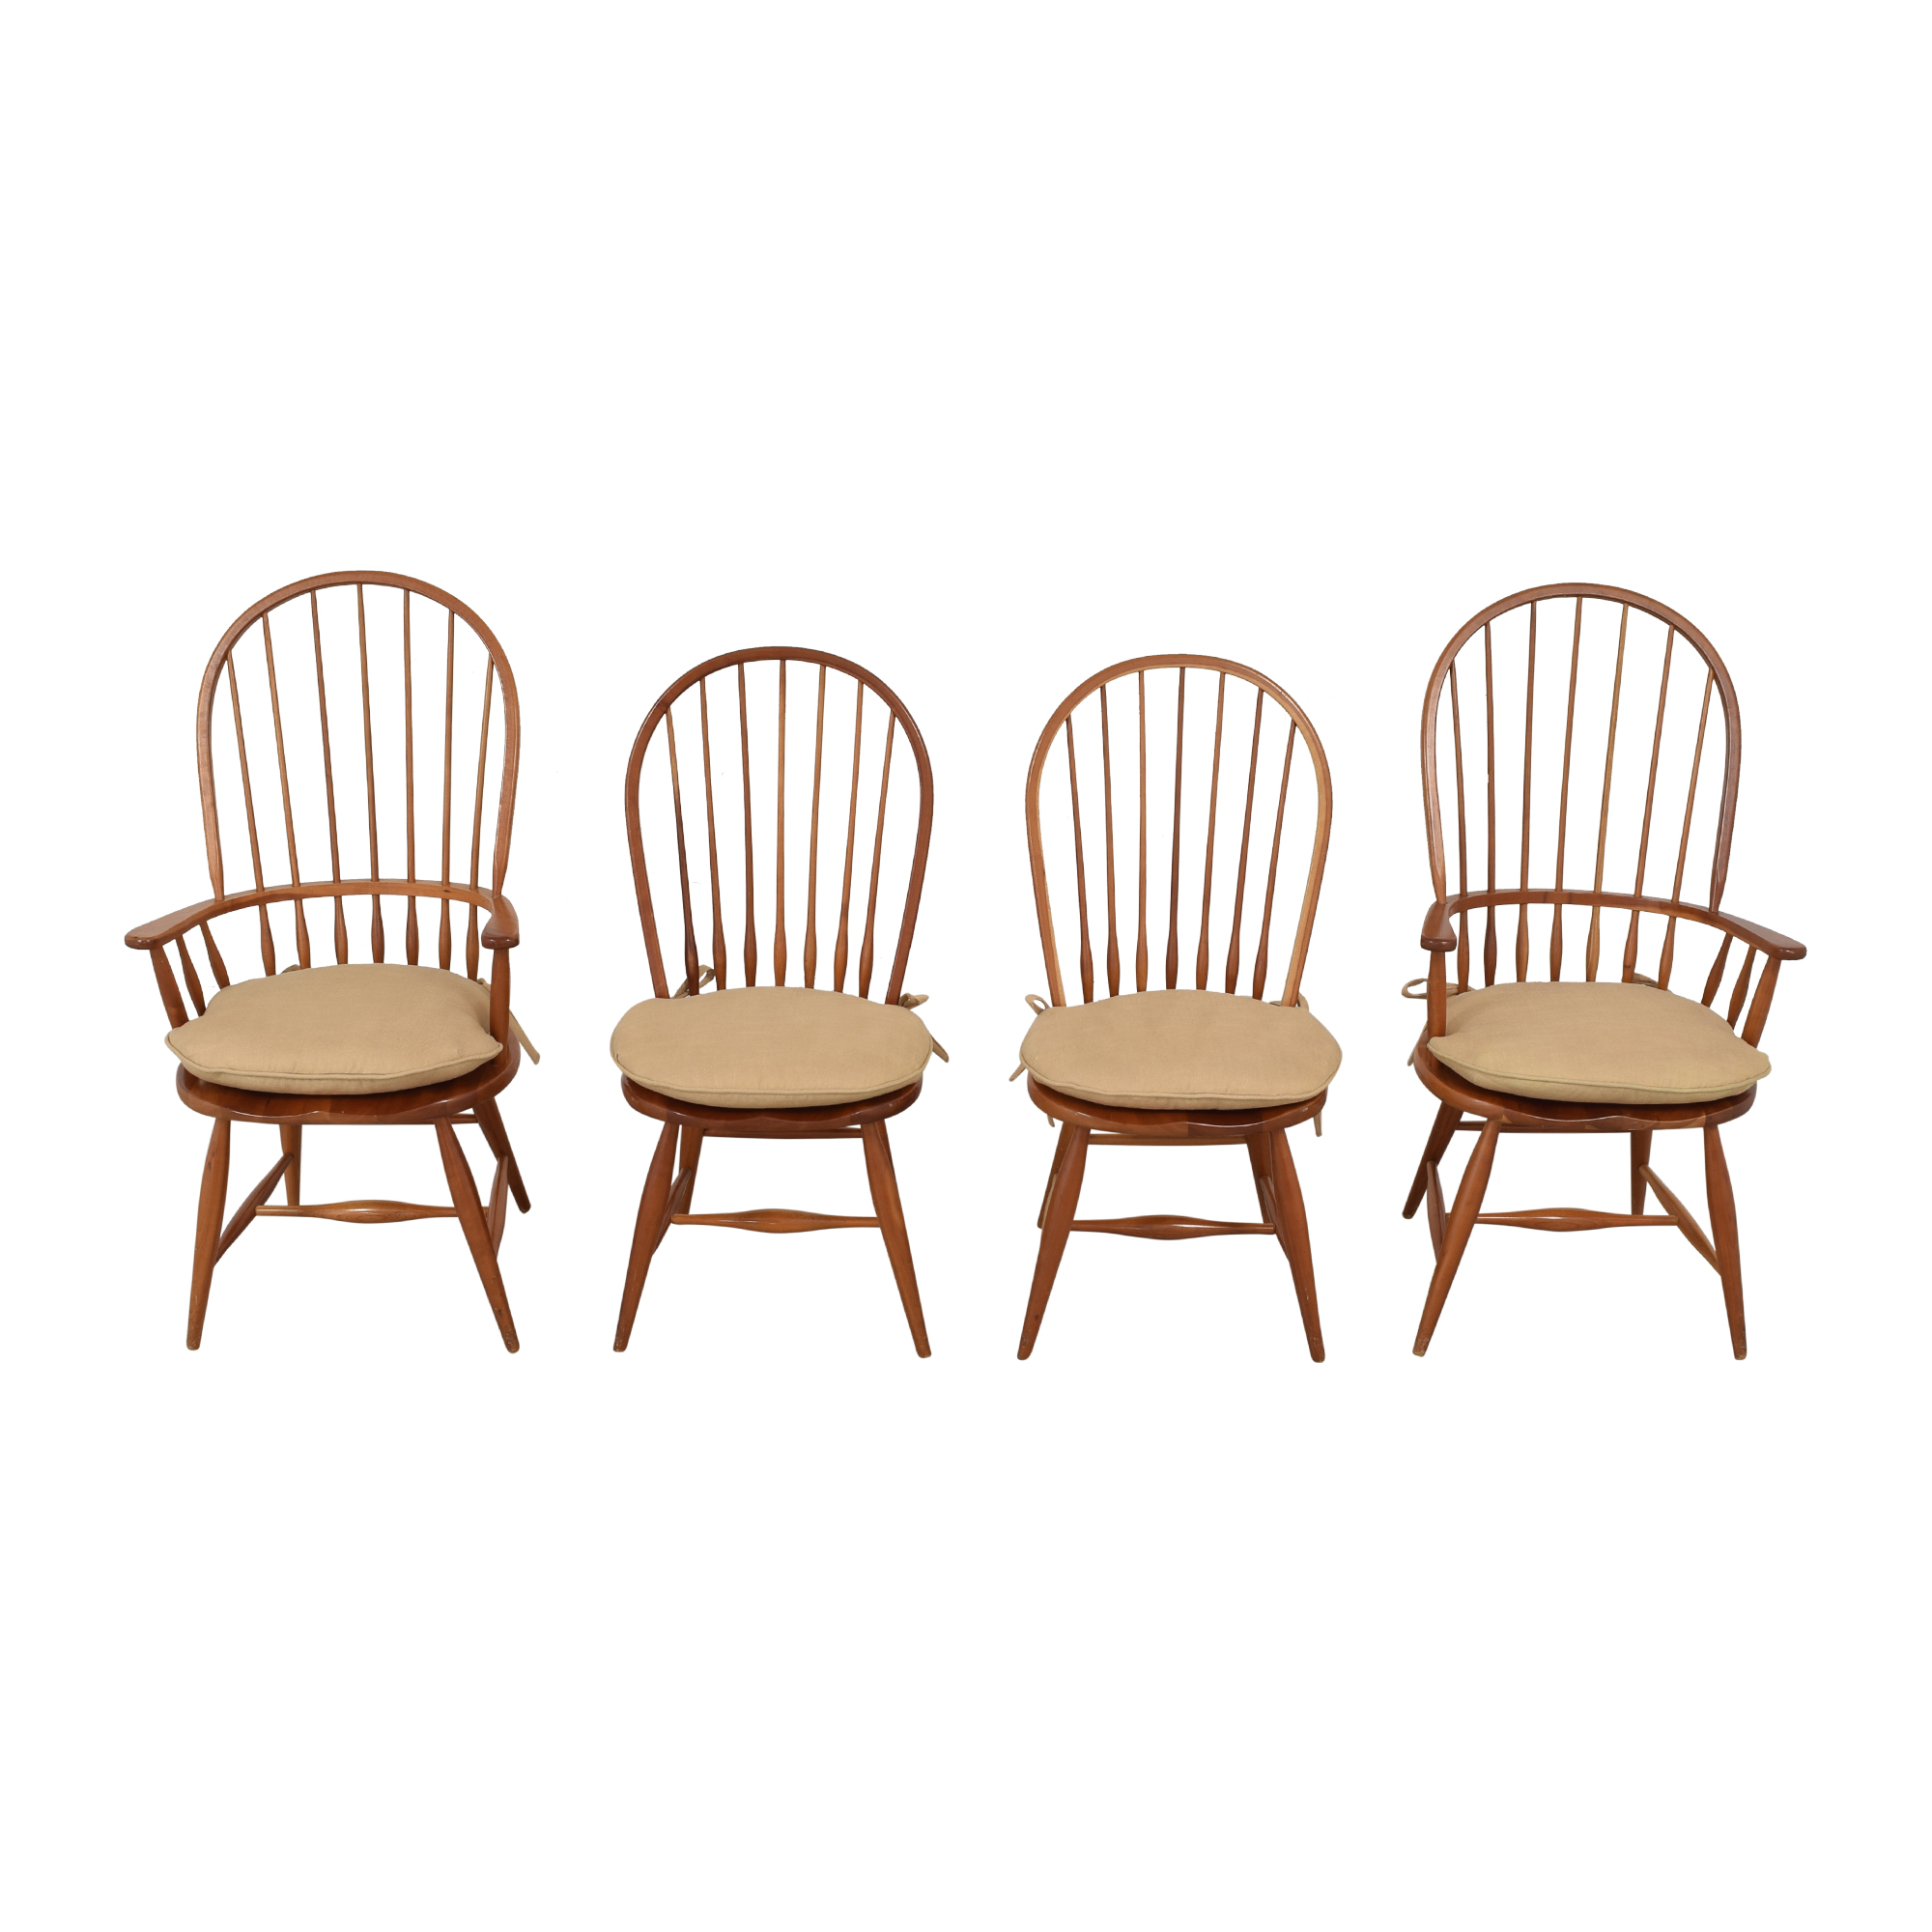 Asher Benjamin Studio Asher Benjamin Studio Windsor Back Dining Room Chairs